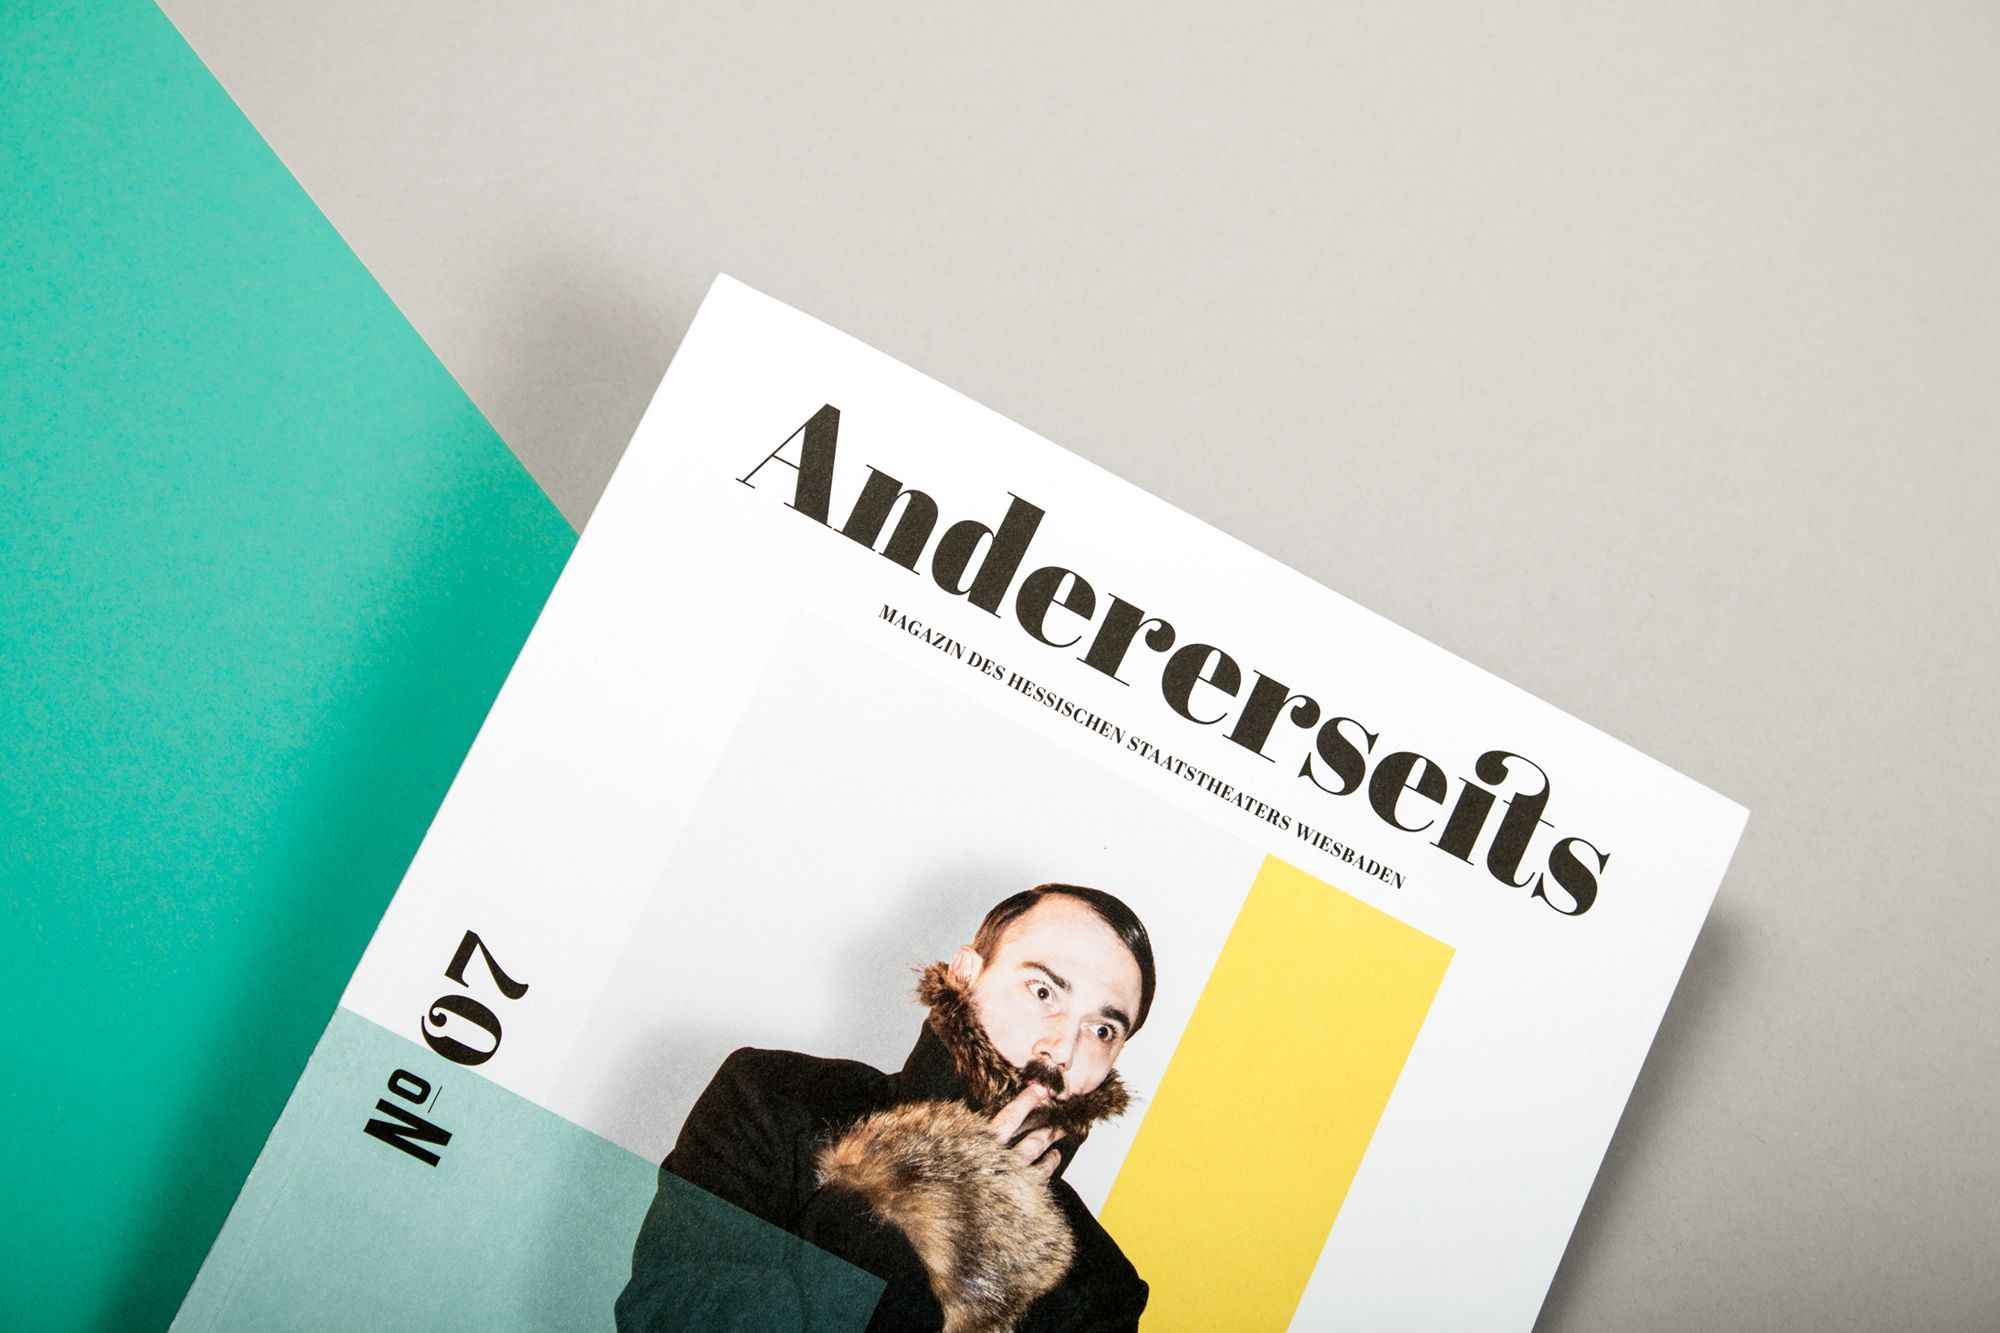 Andererseits Magazine on Behance Andererseits Magazine on